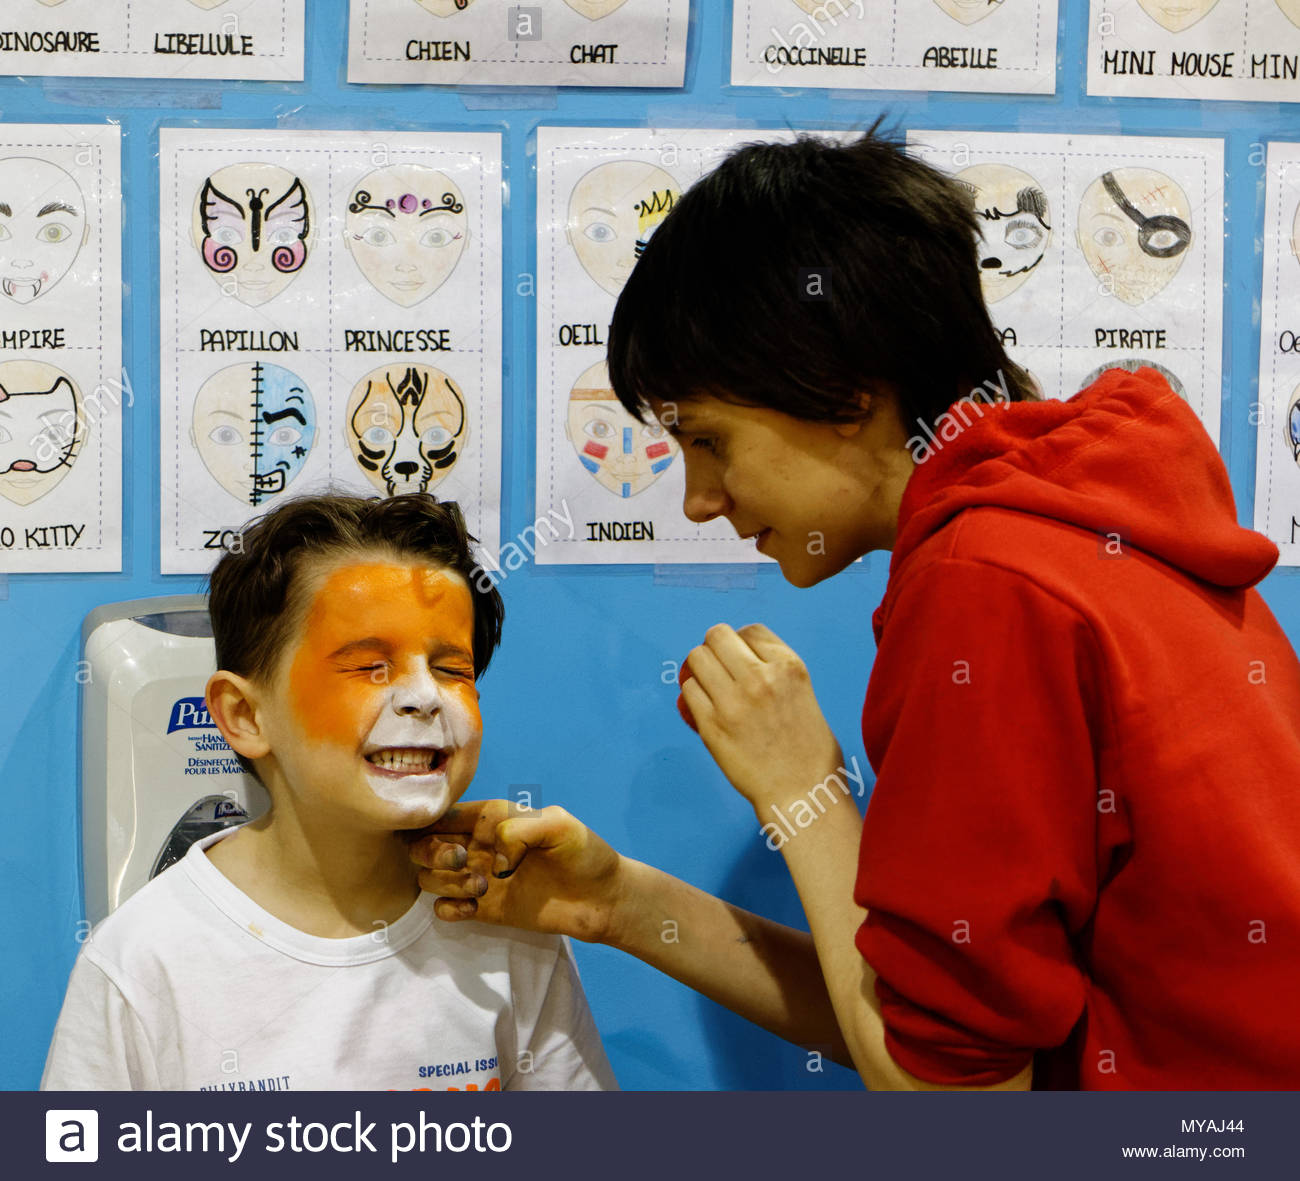 A young boy (6 yr old) grimaces while being face painted - Stock Image